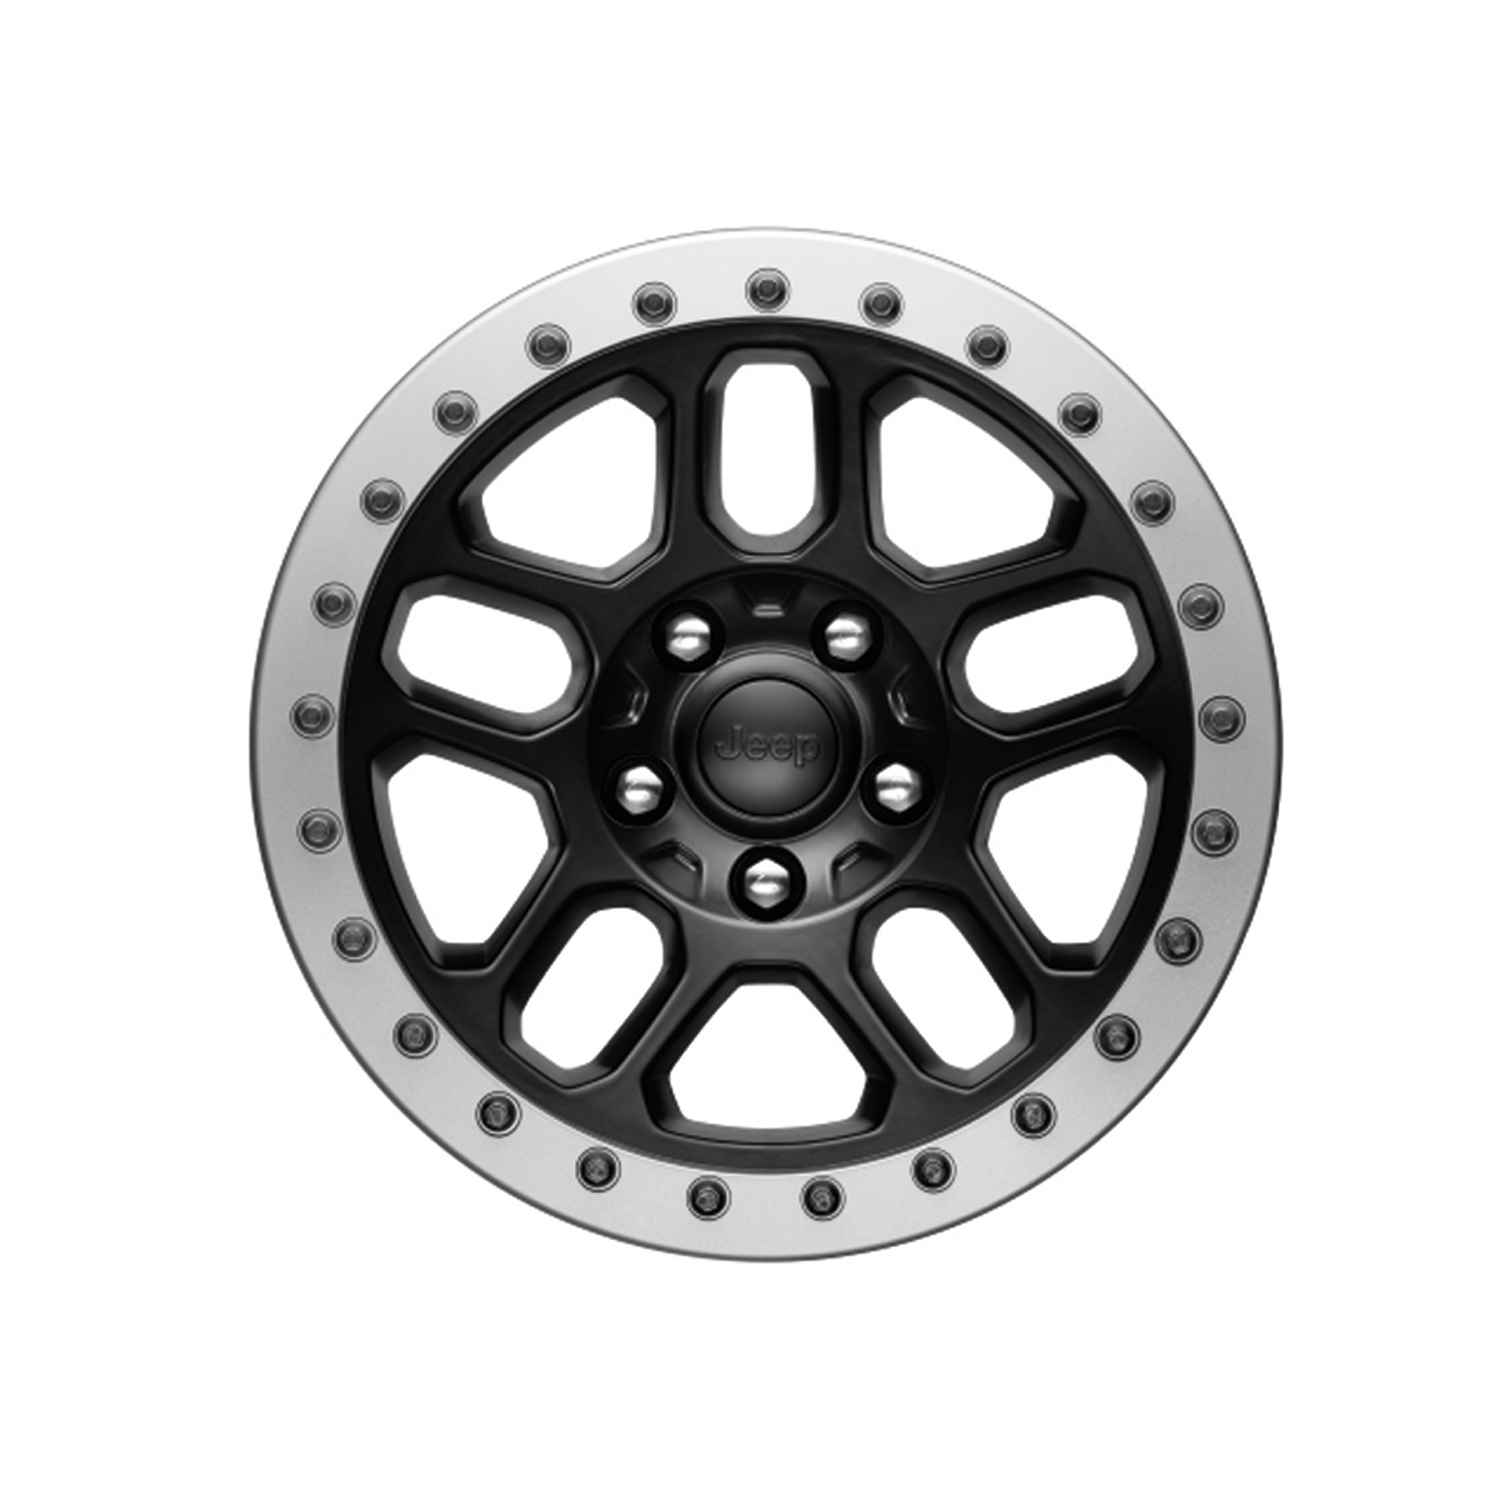 OEM 2020 Jeep Wrangler JL 2-Door 17 Beadlock-capable Wheel